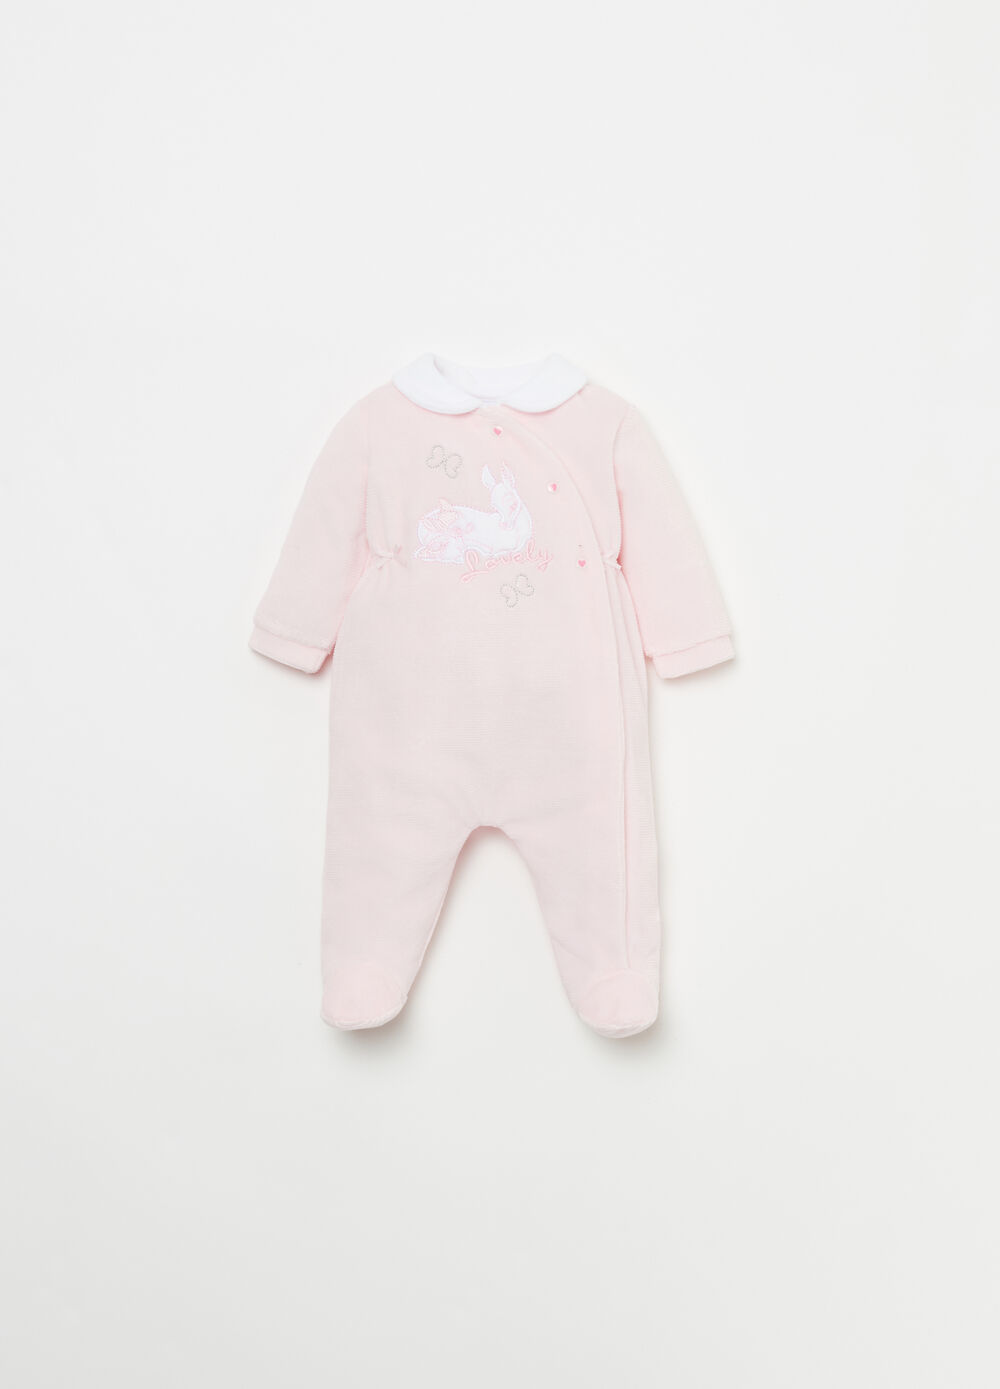 Velour onesie with Disney Baby embroidery